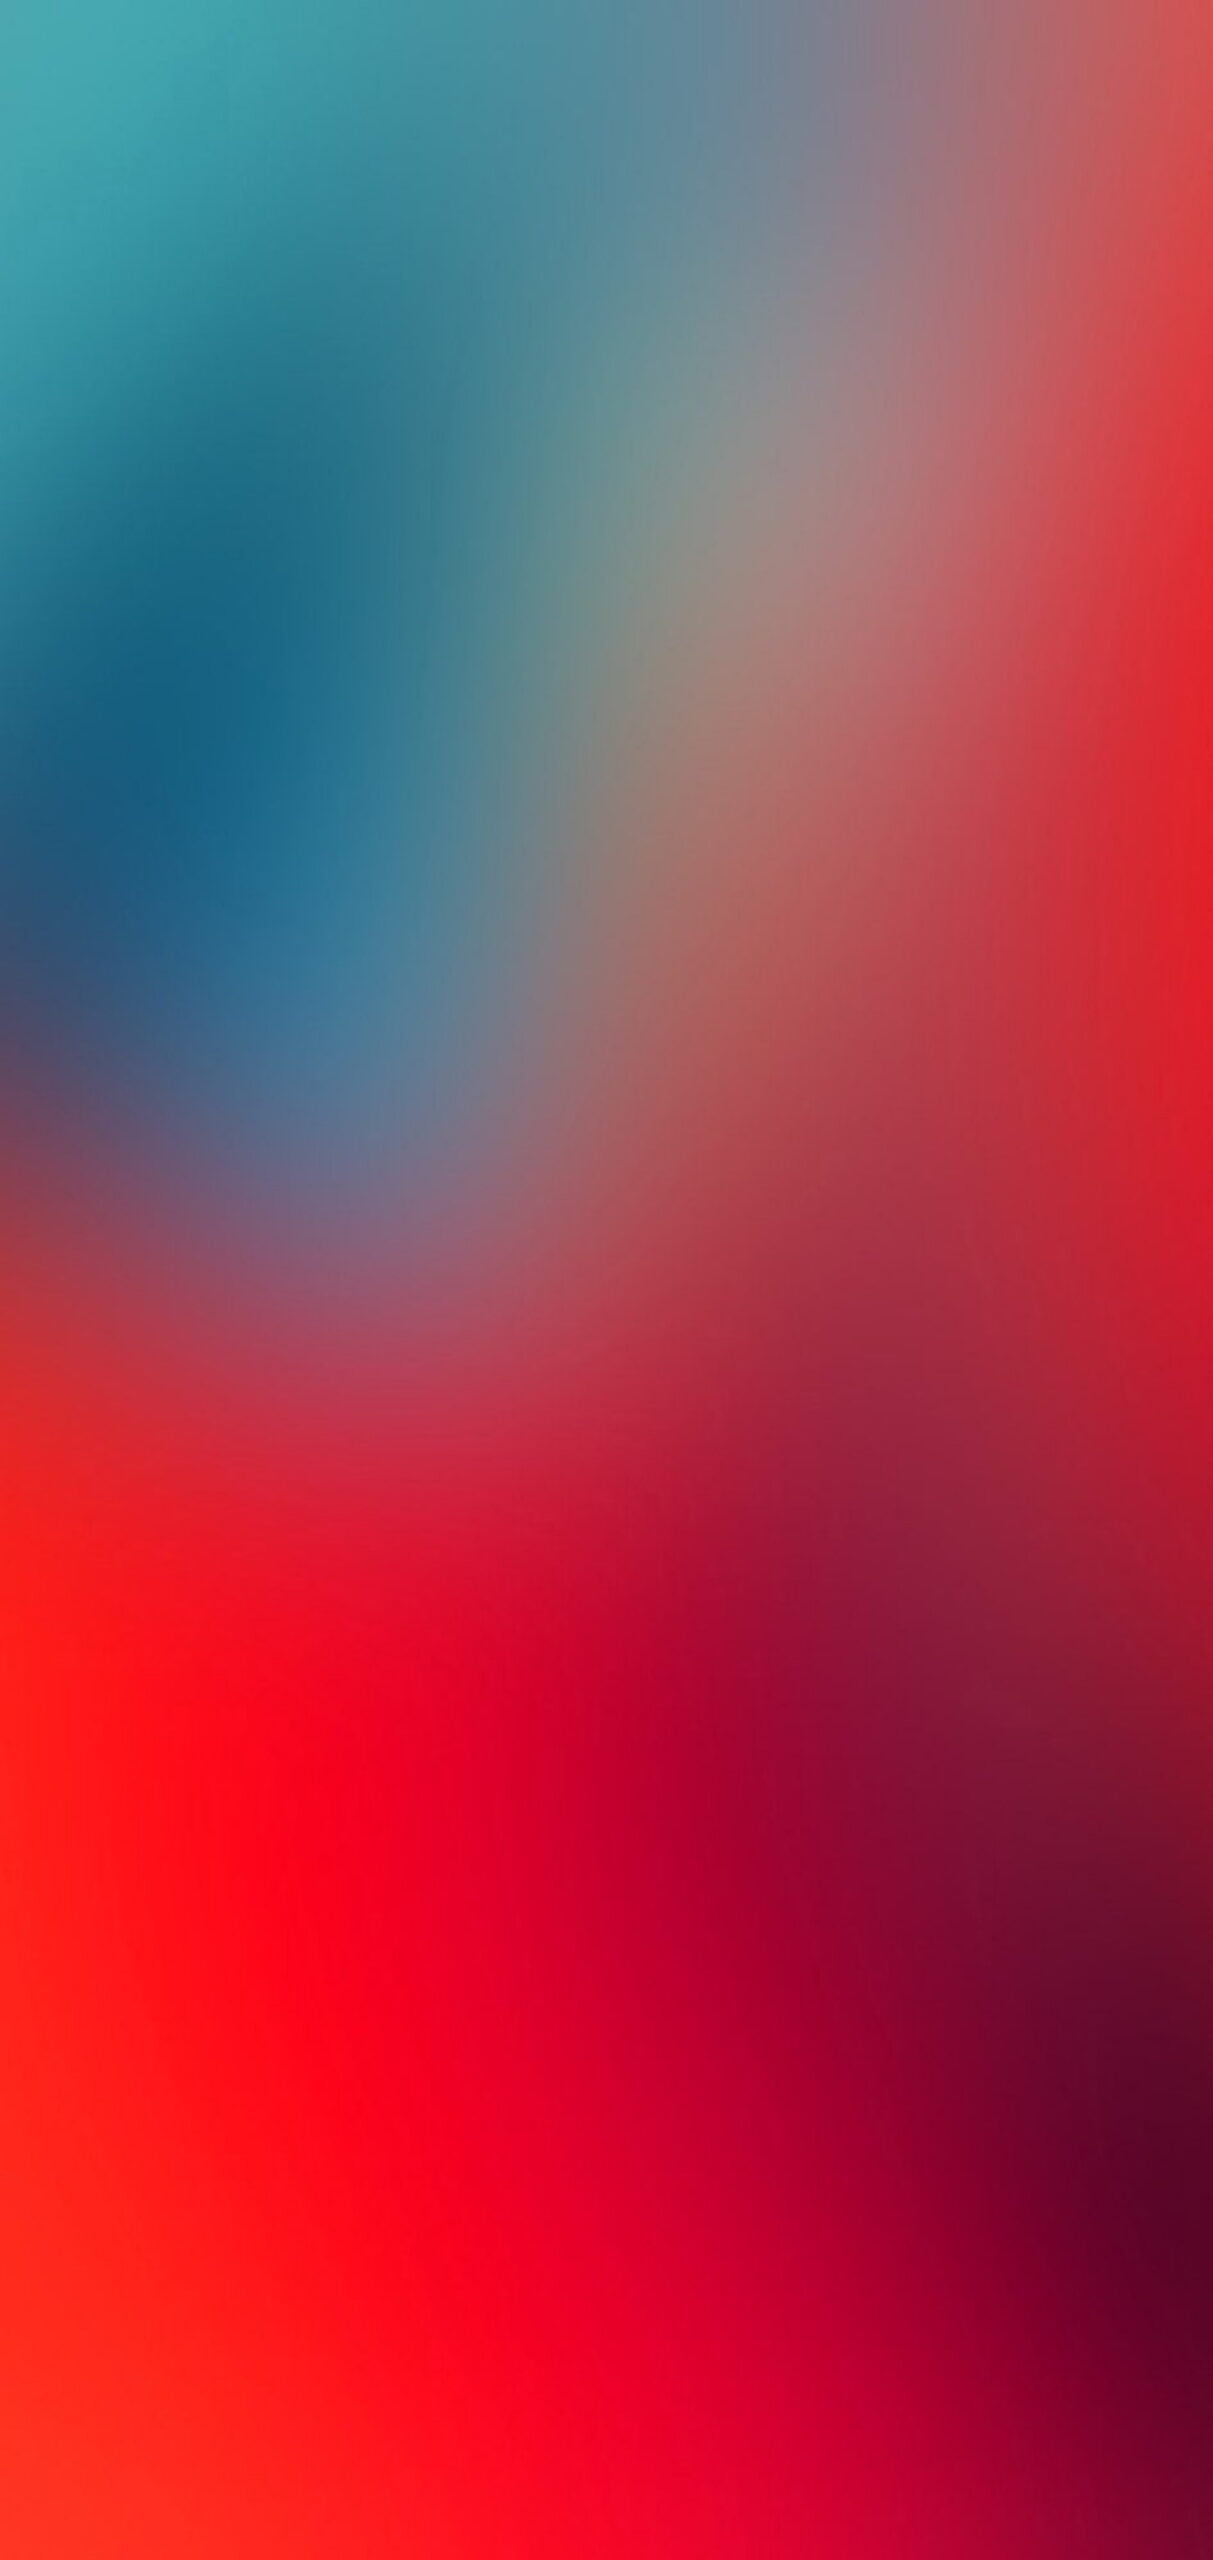 iphone 12 wallpaper images